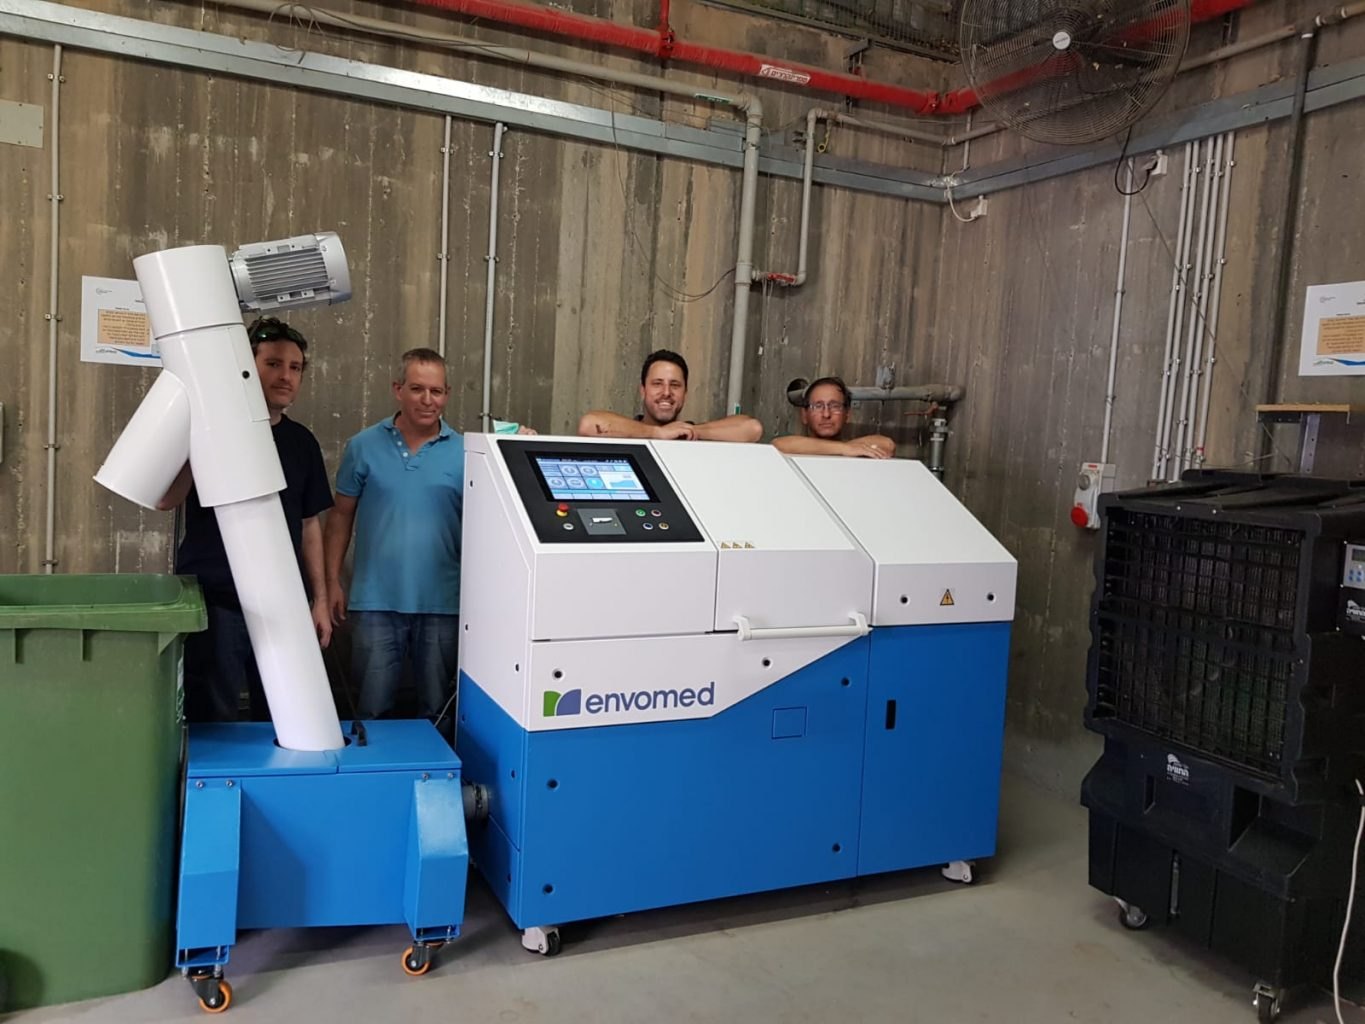 Envomed 80, the solution for treating COVID-19 waste sustainably |The Switchers